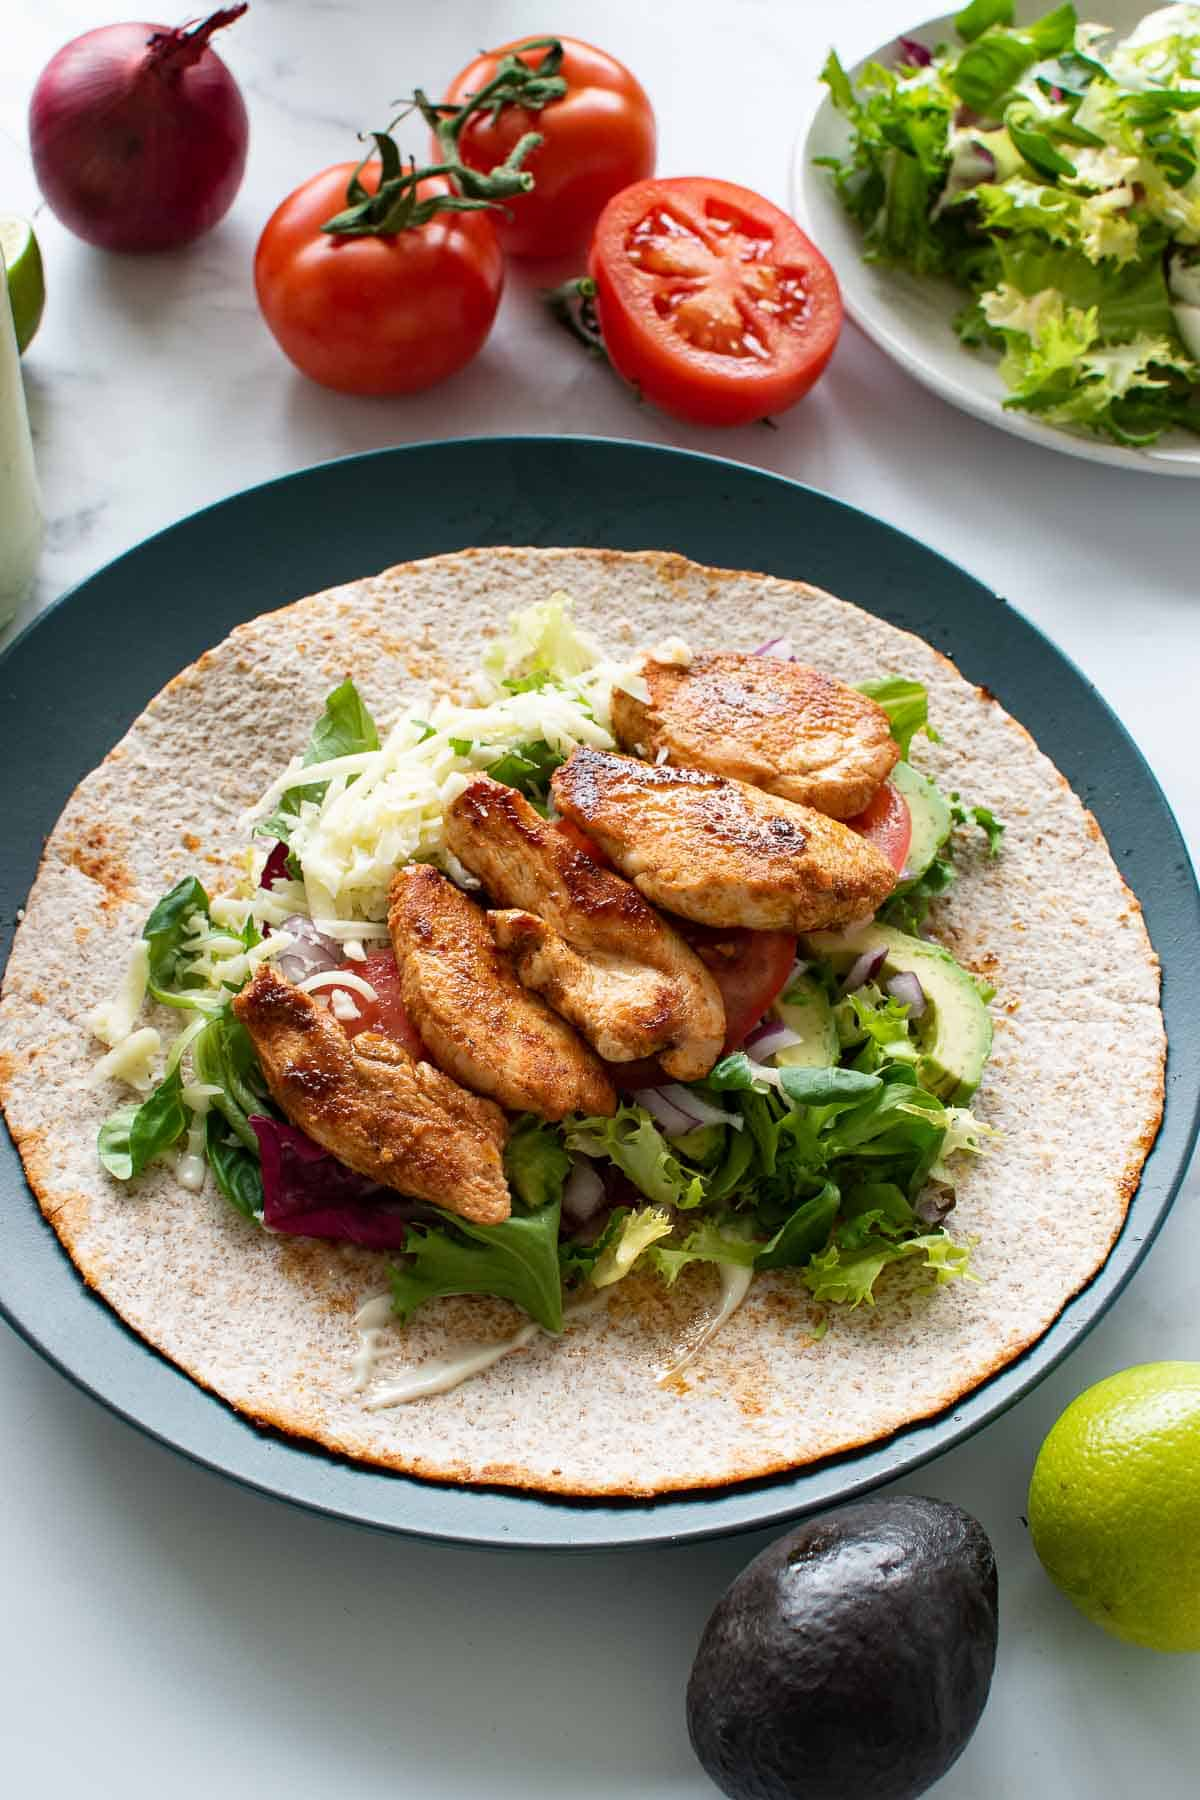 A plate with a chicken wrap, with tomatoes and lettuce in the background.